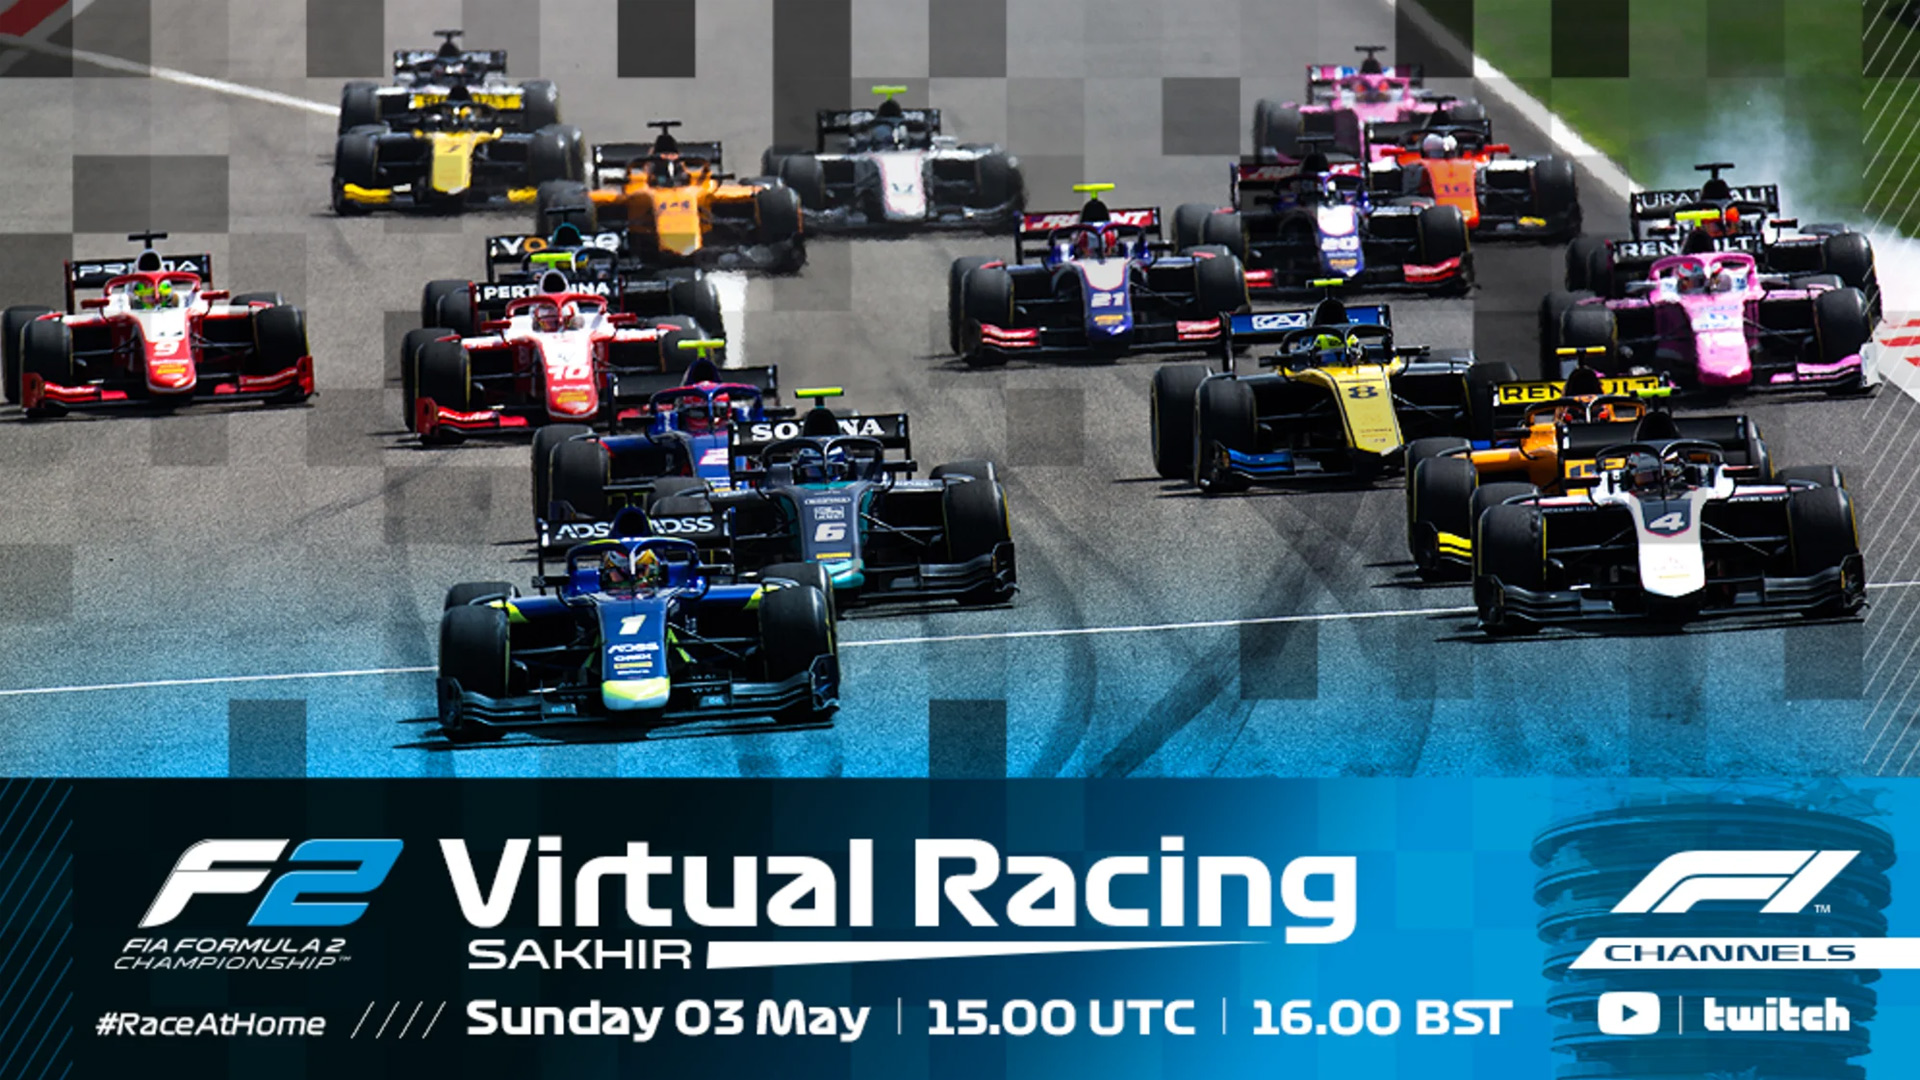 Watch Live Join Our Stream Of The Opening Round Of F2 F3 Virtual Racing Formula 1